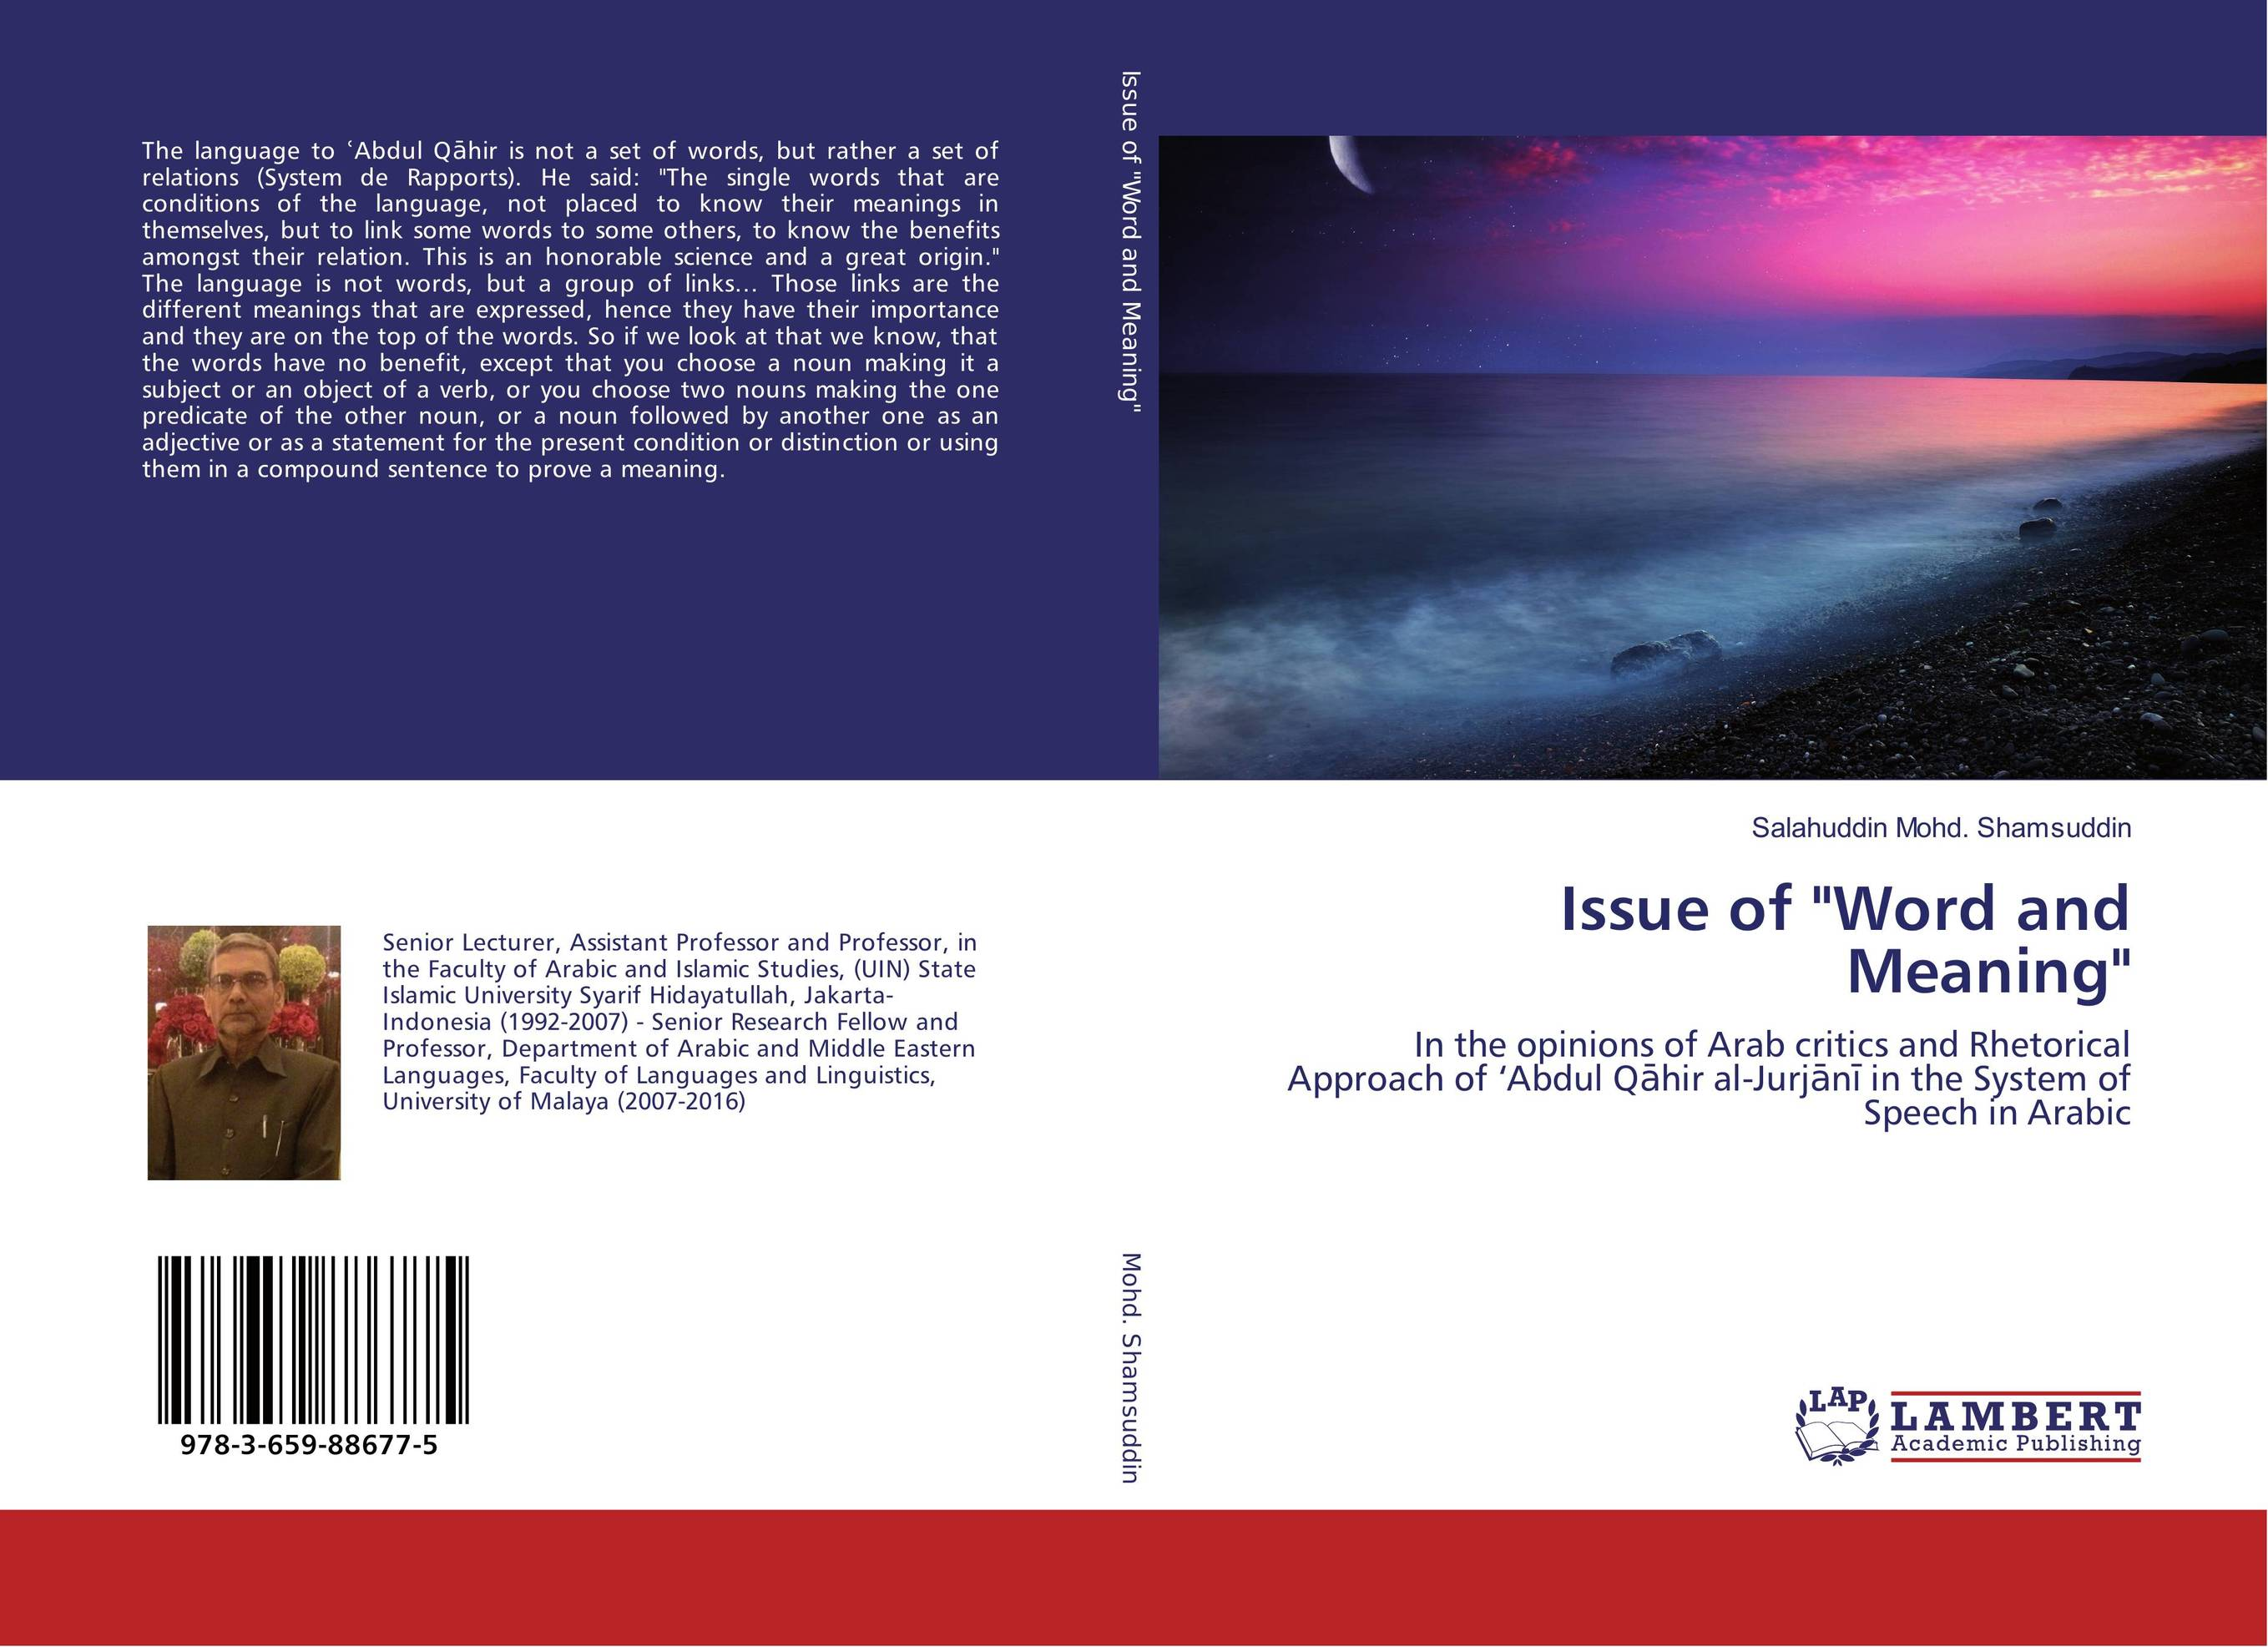 Issue of Word and Meaning